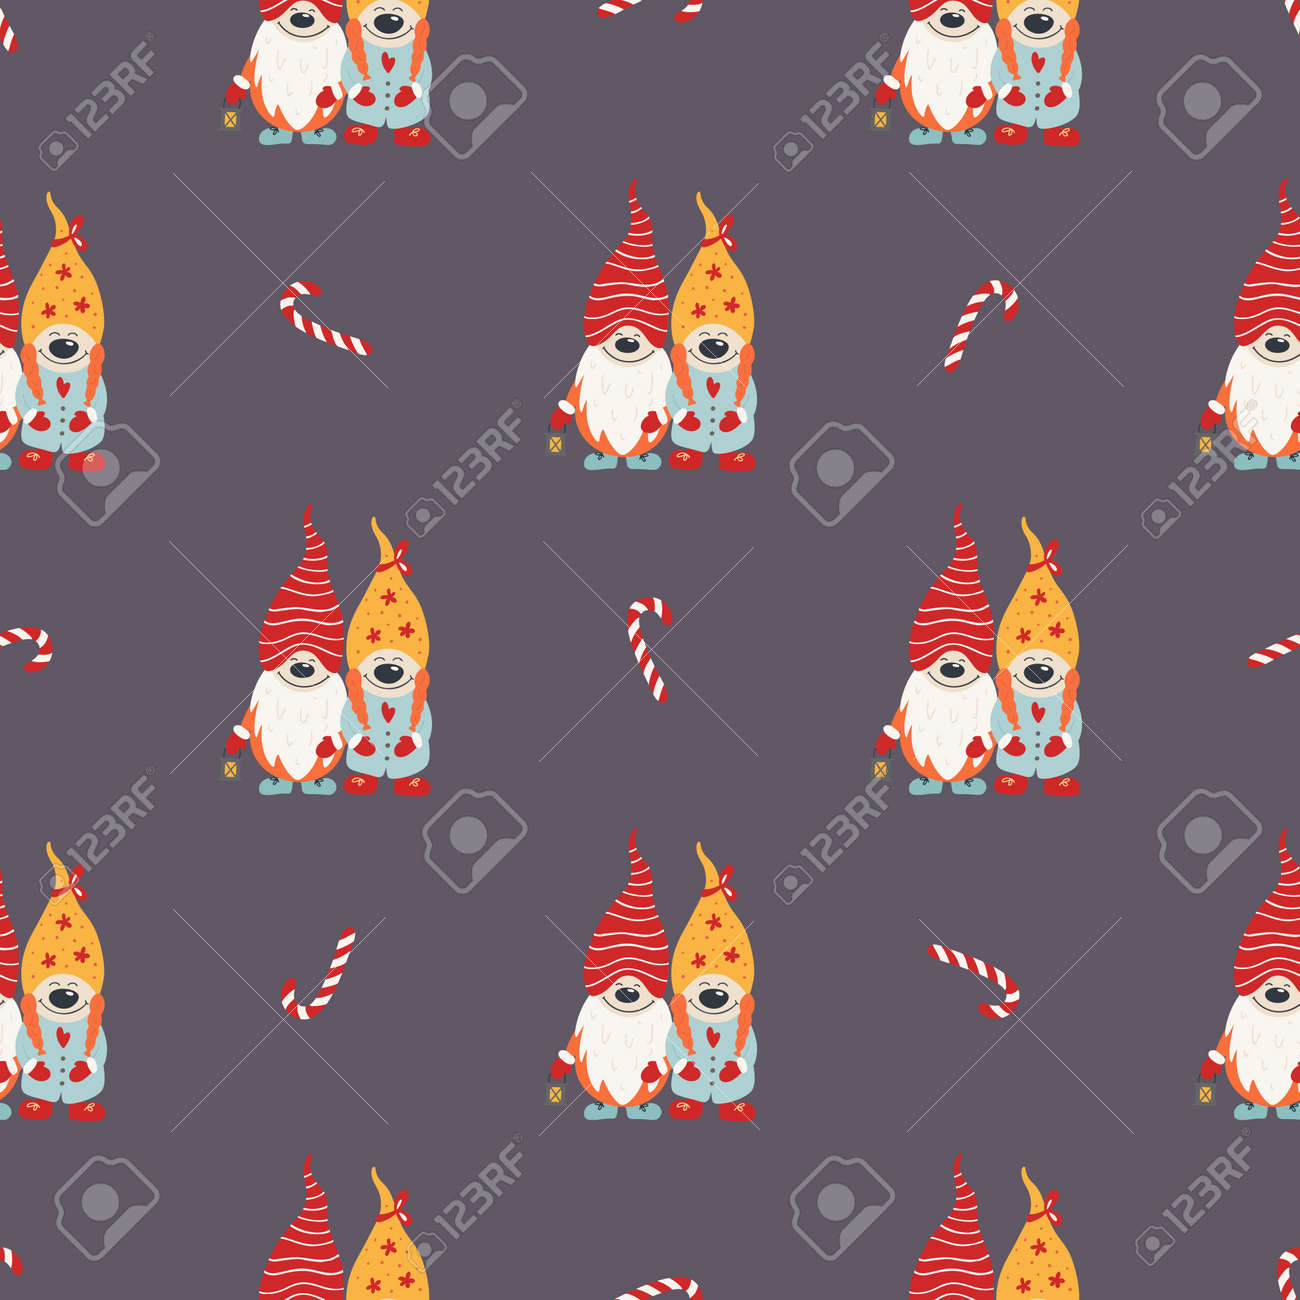 Christmas seamless pattern for background - 134853283